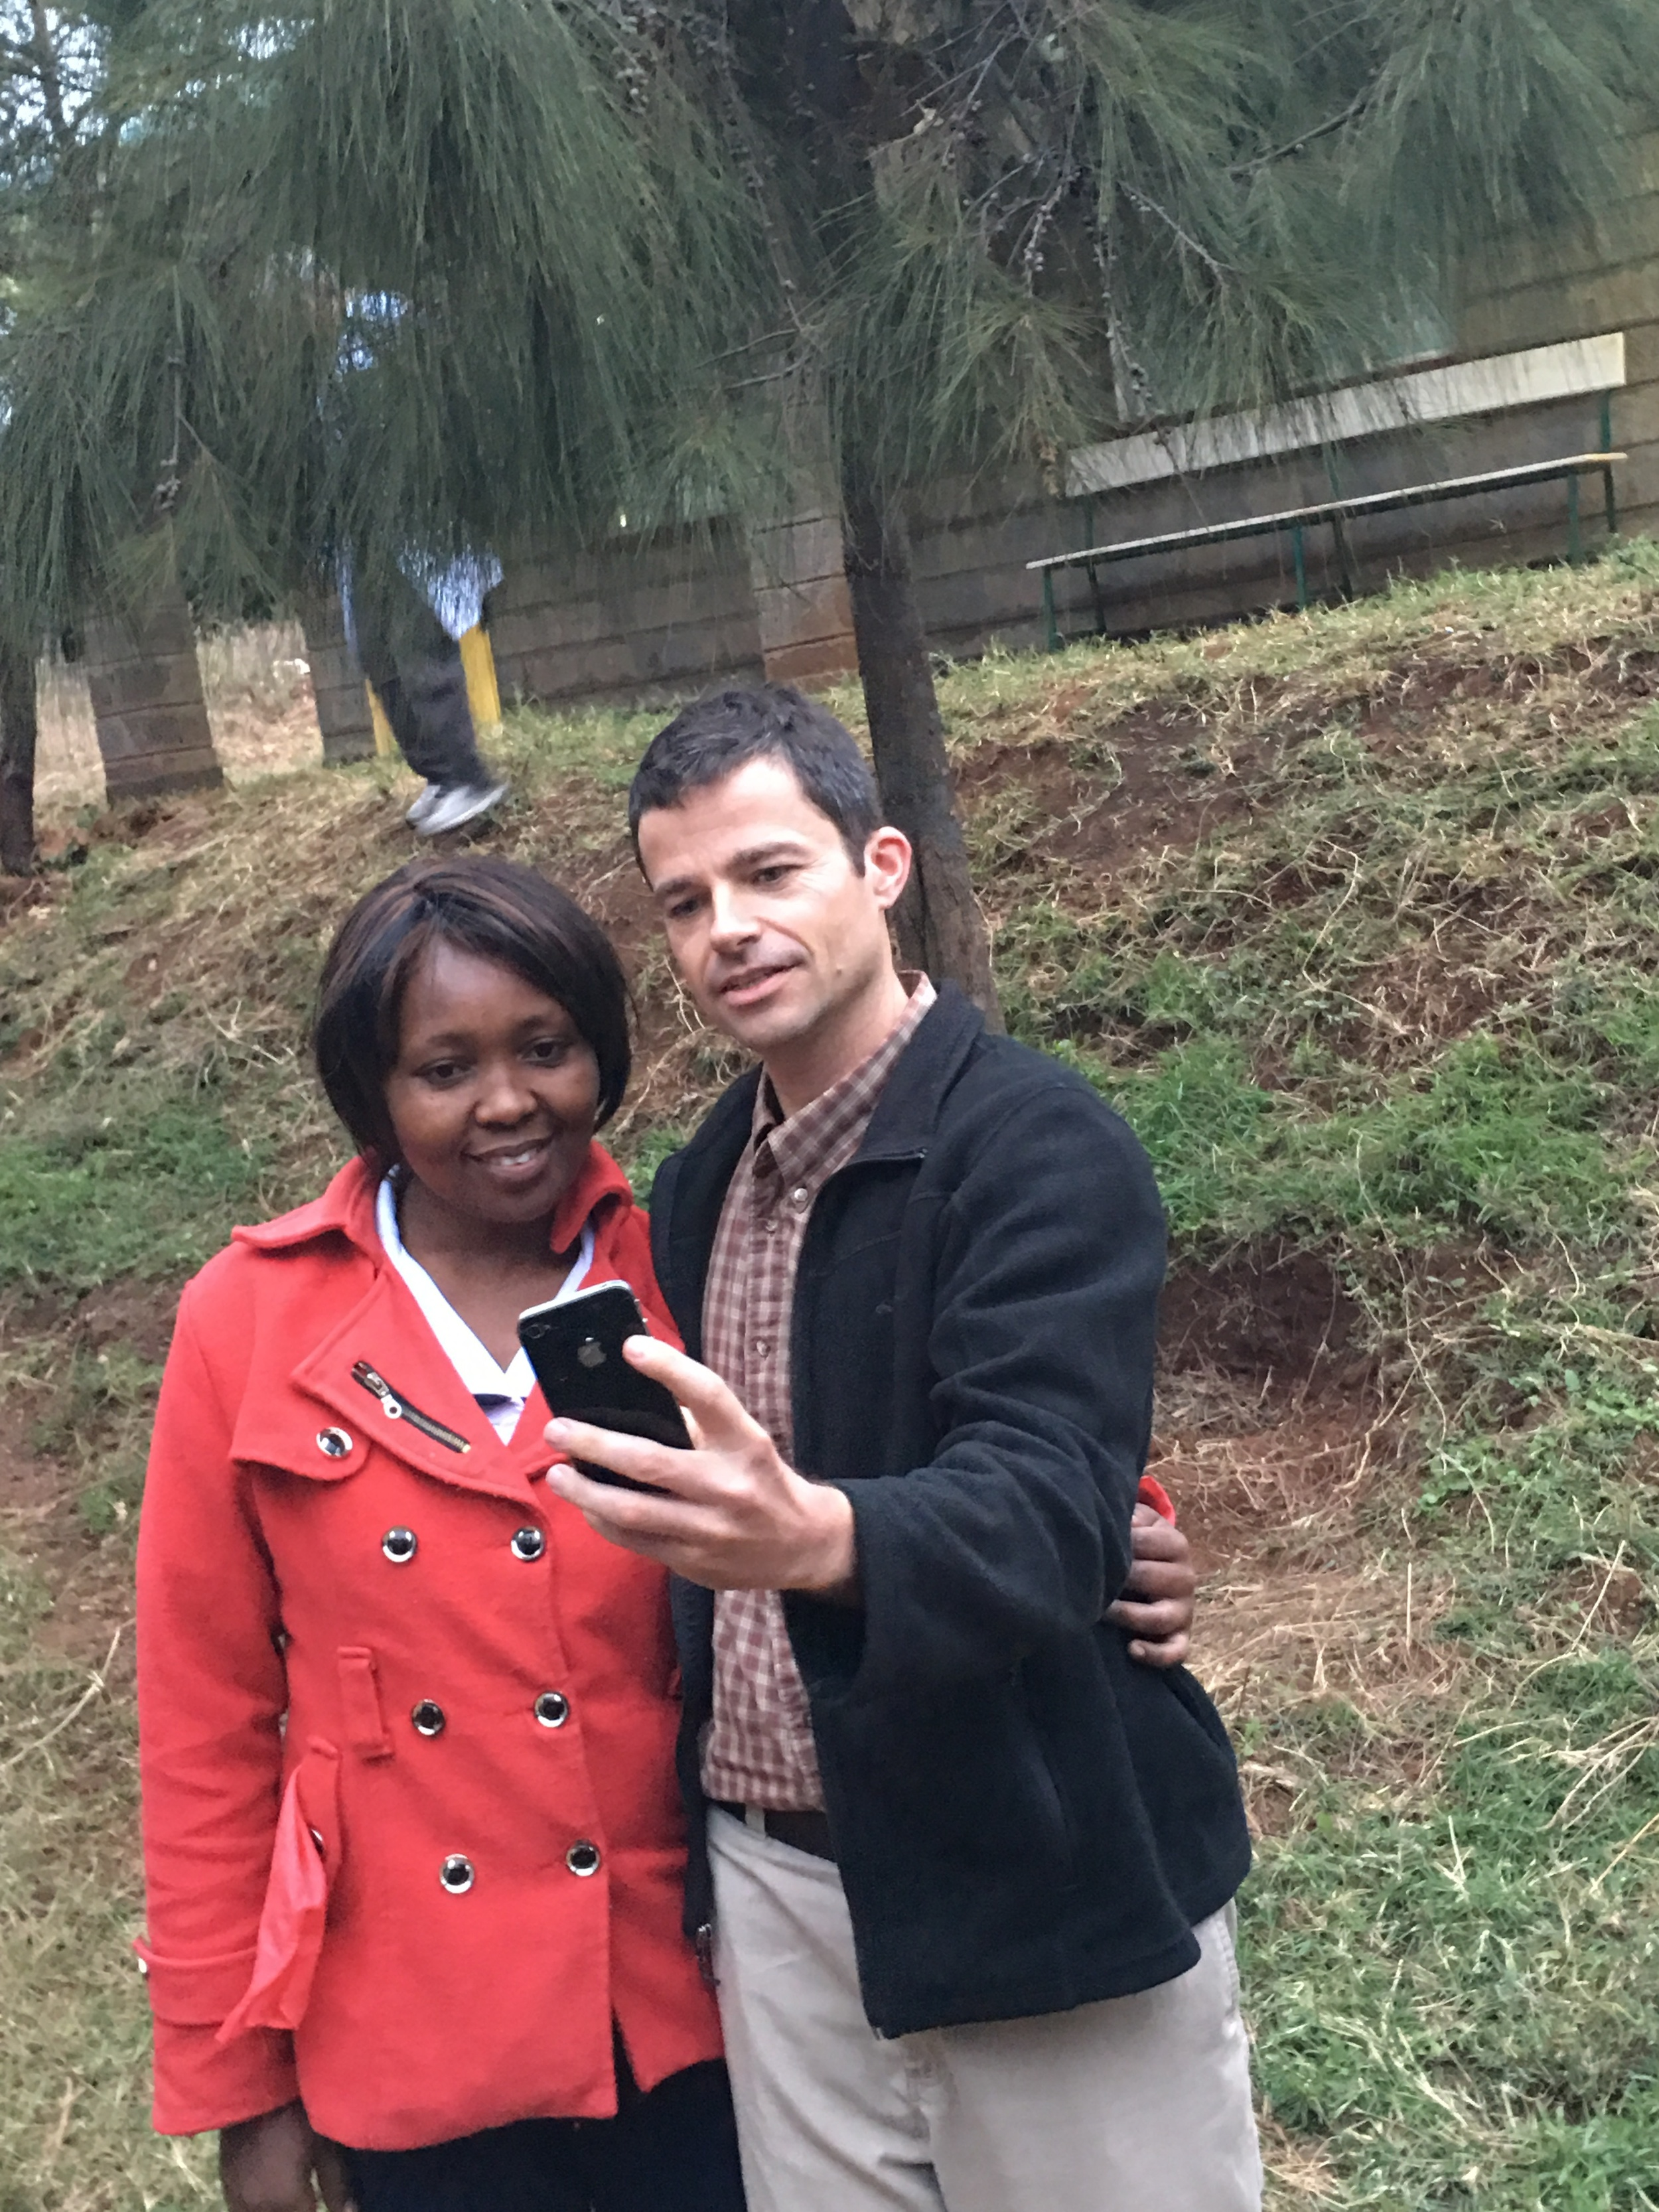 Dr. Michael and Selfine taking a selfie!